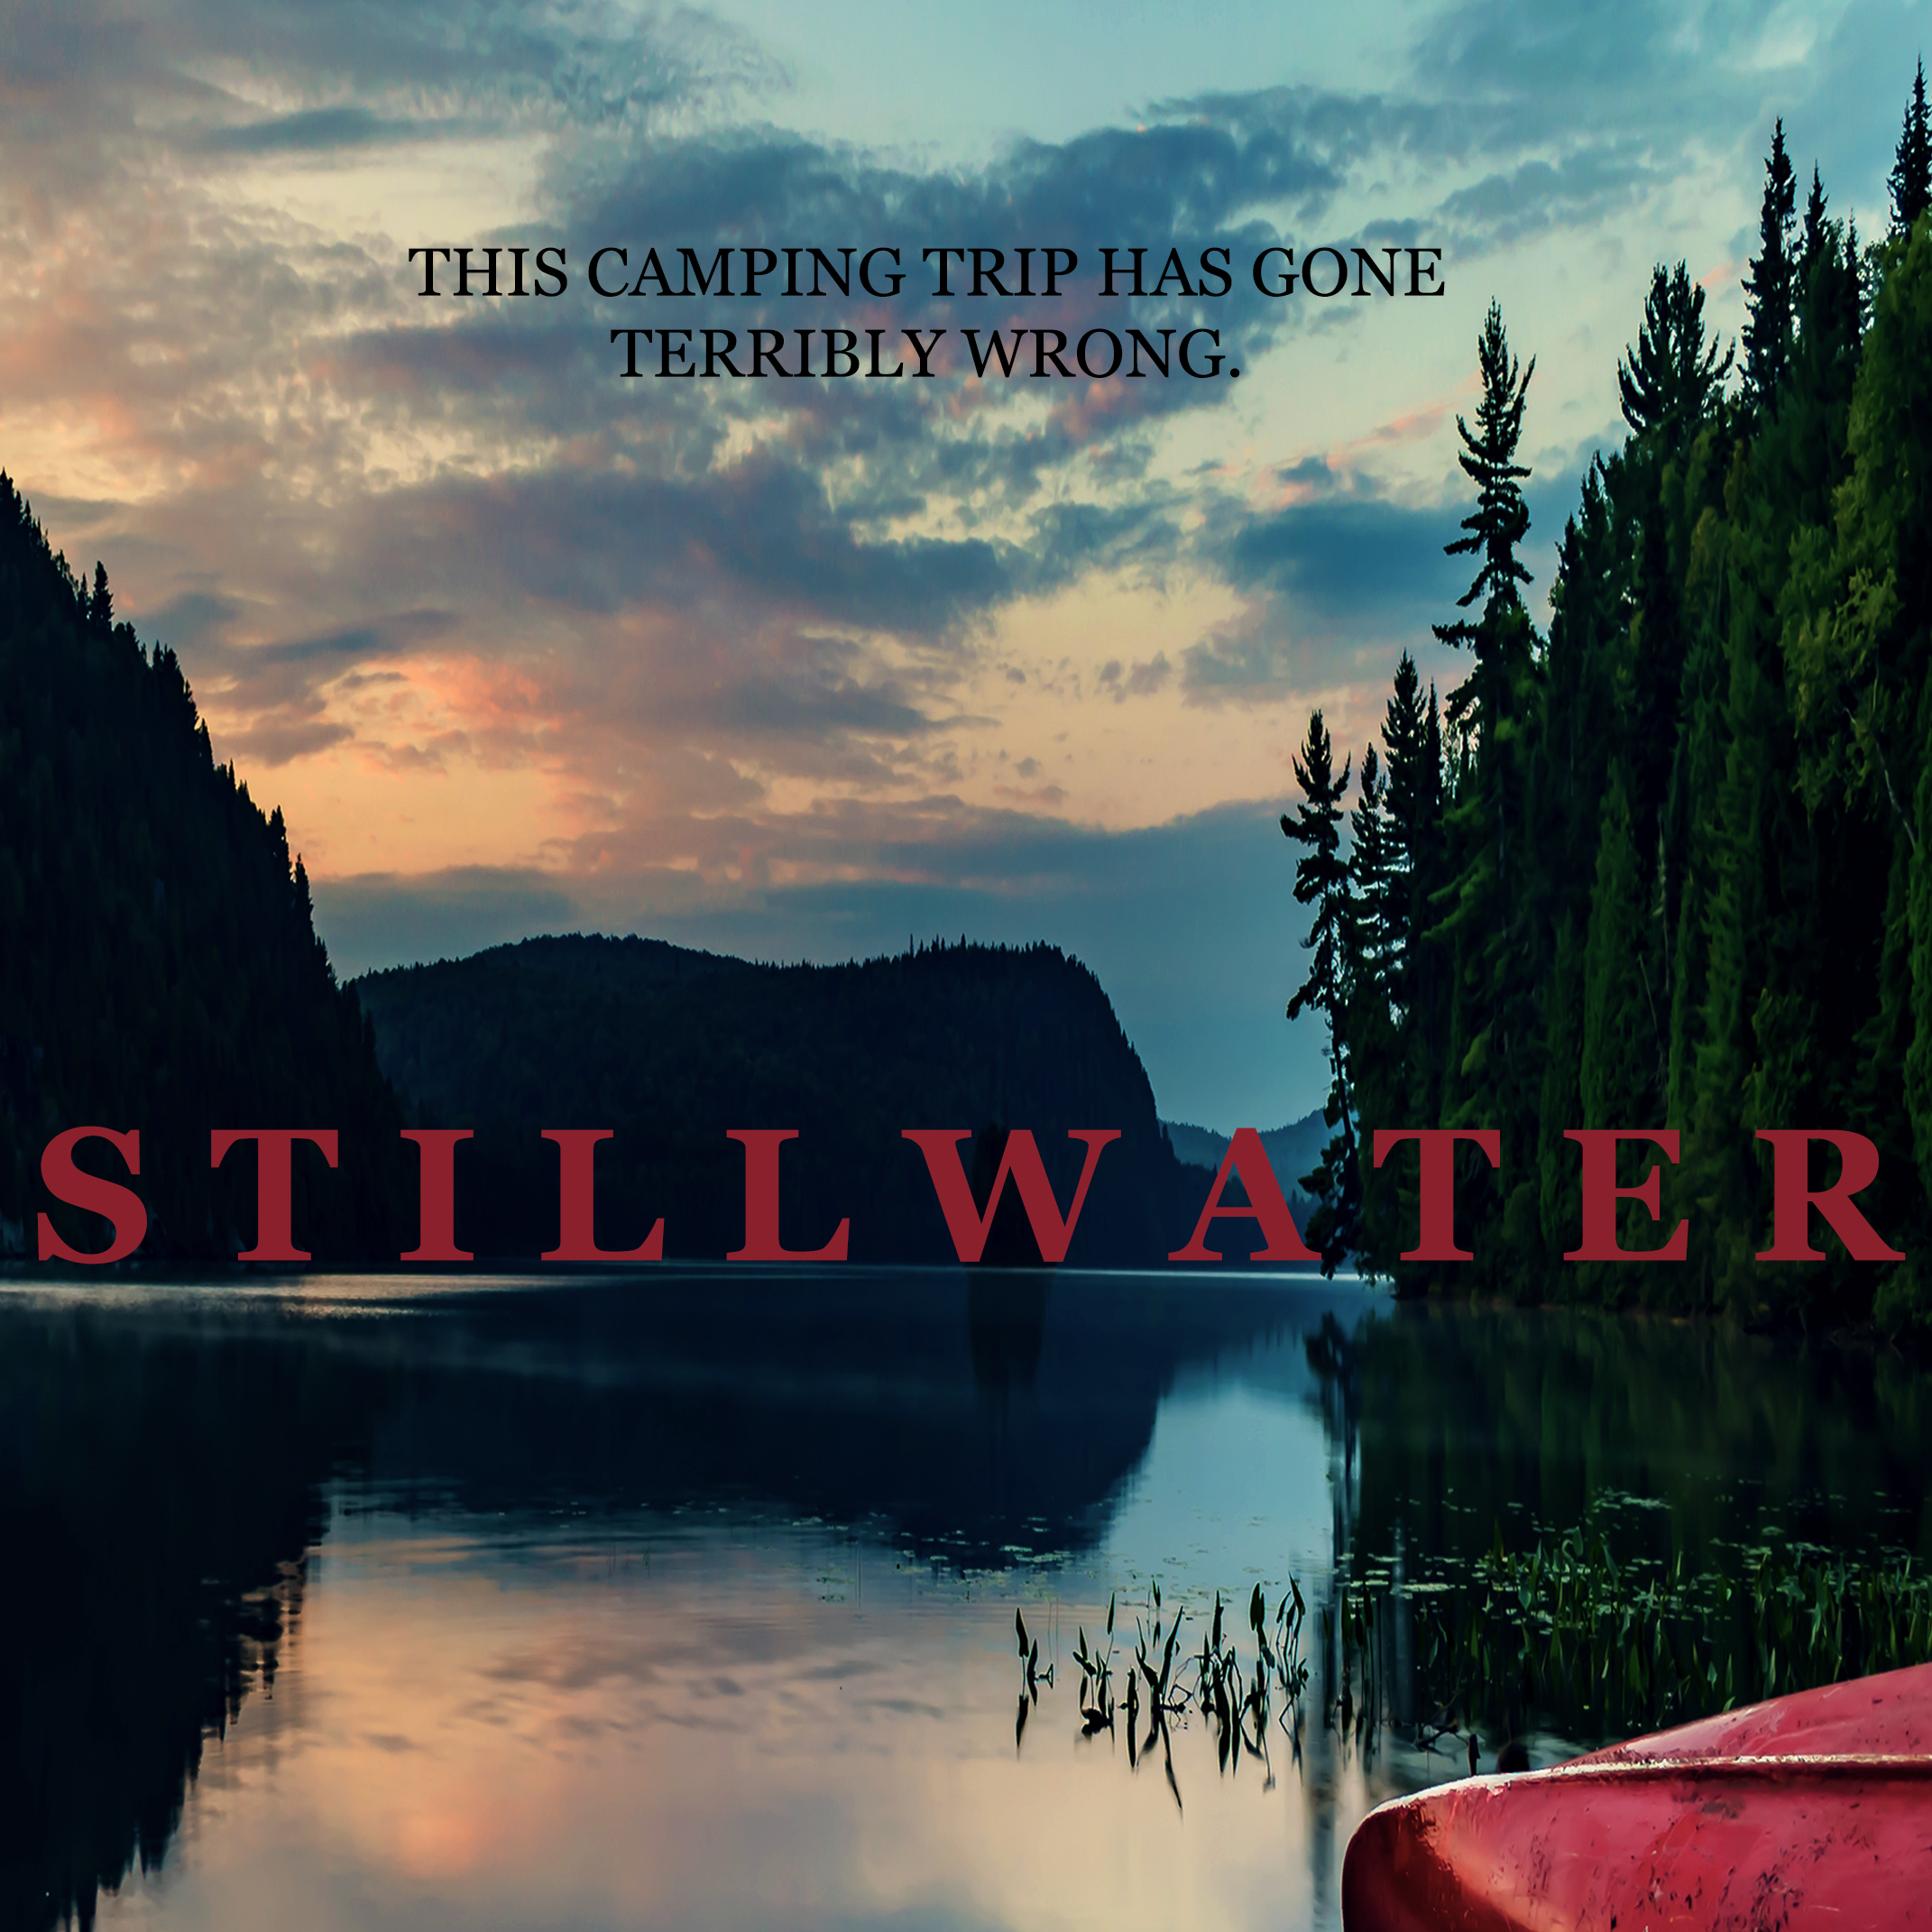 'Stillwater': Kimberly grad's thriller plays Thursday at Marcus Hollywood Cinema